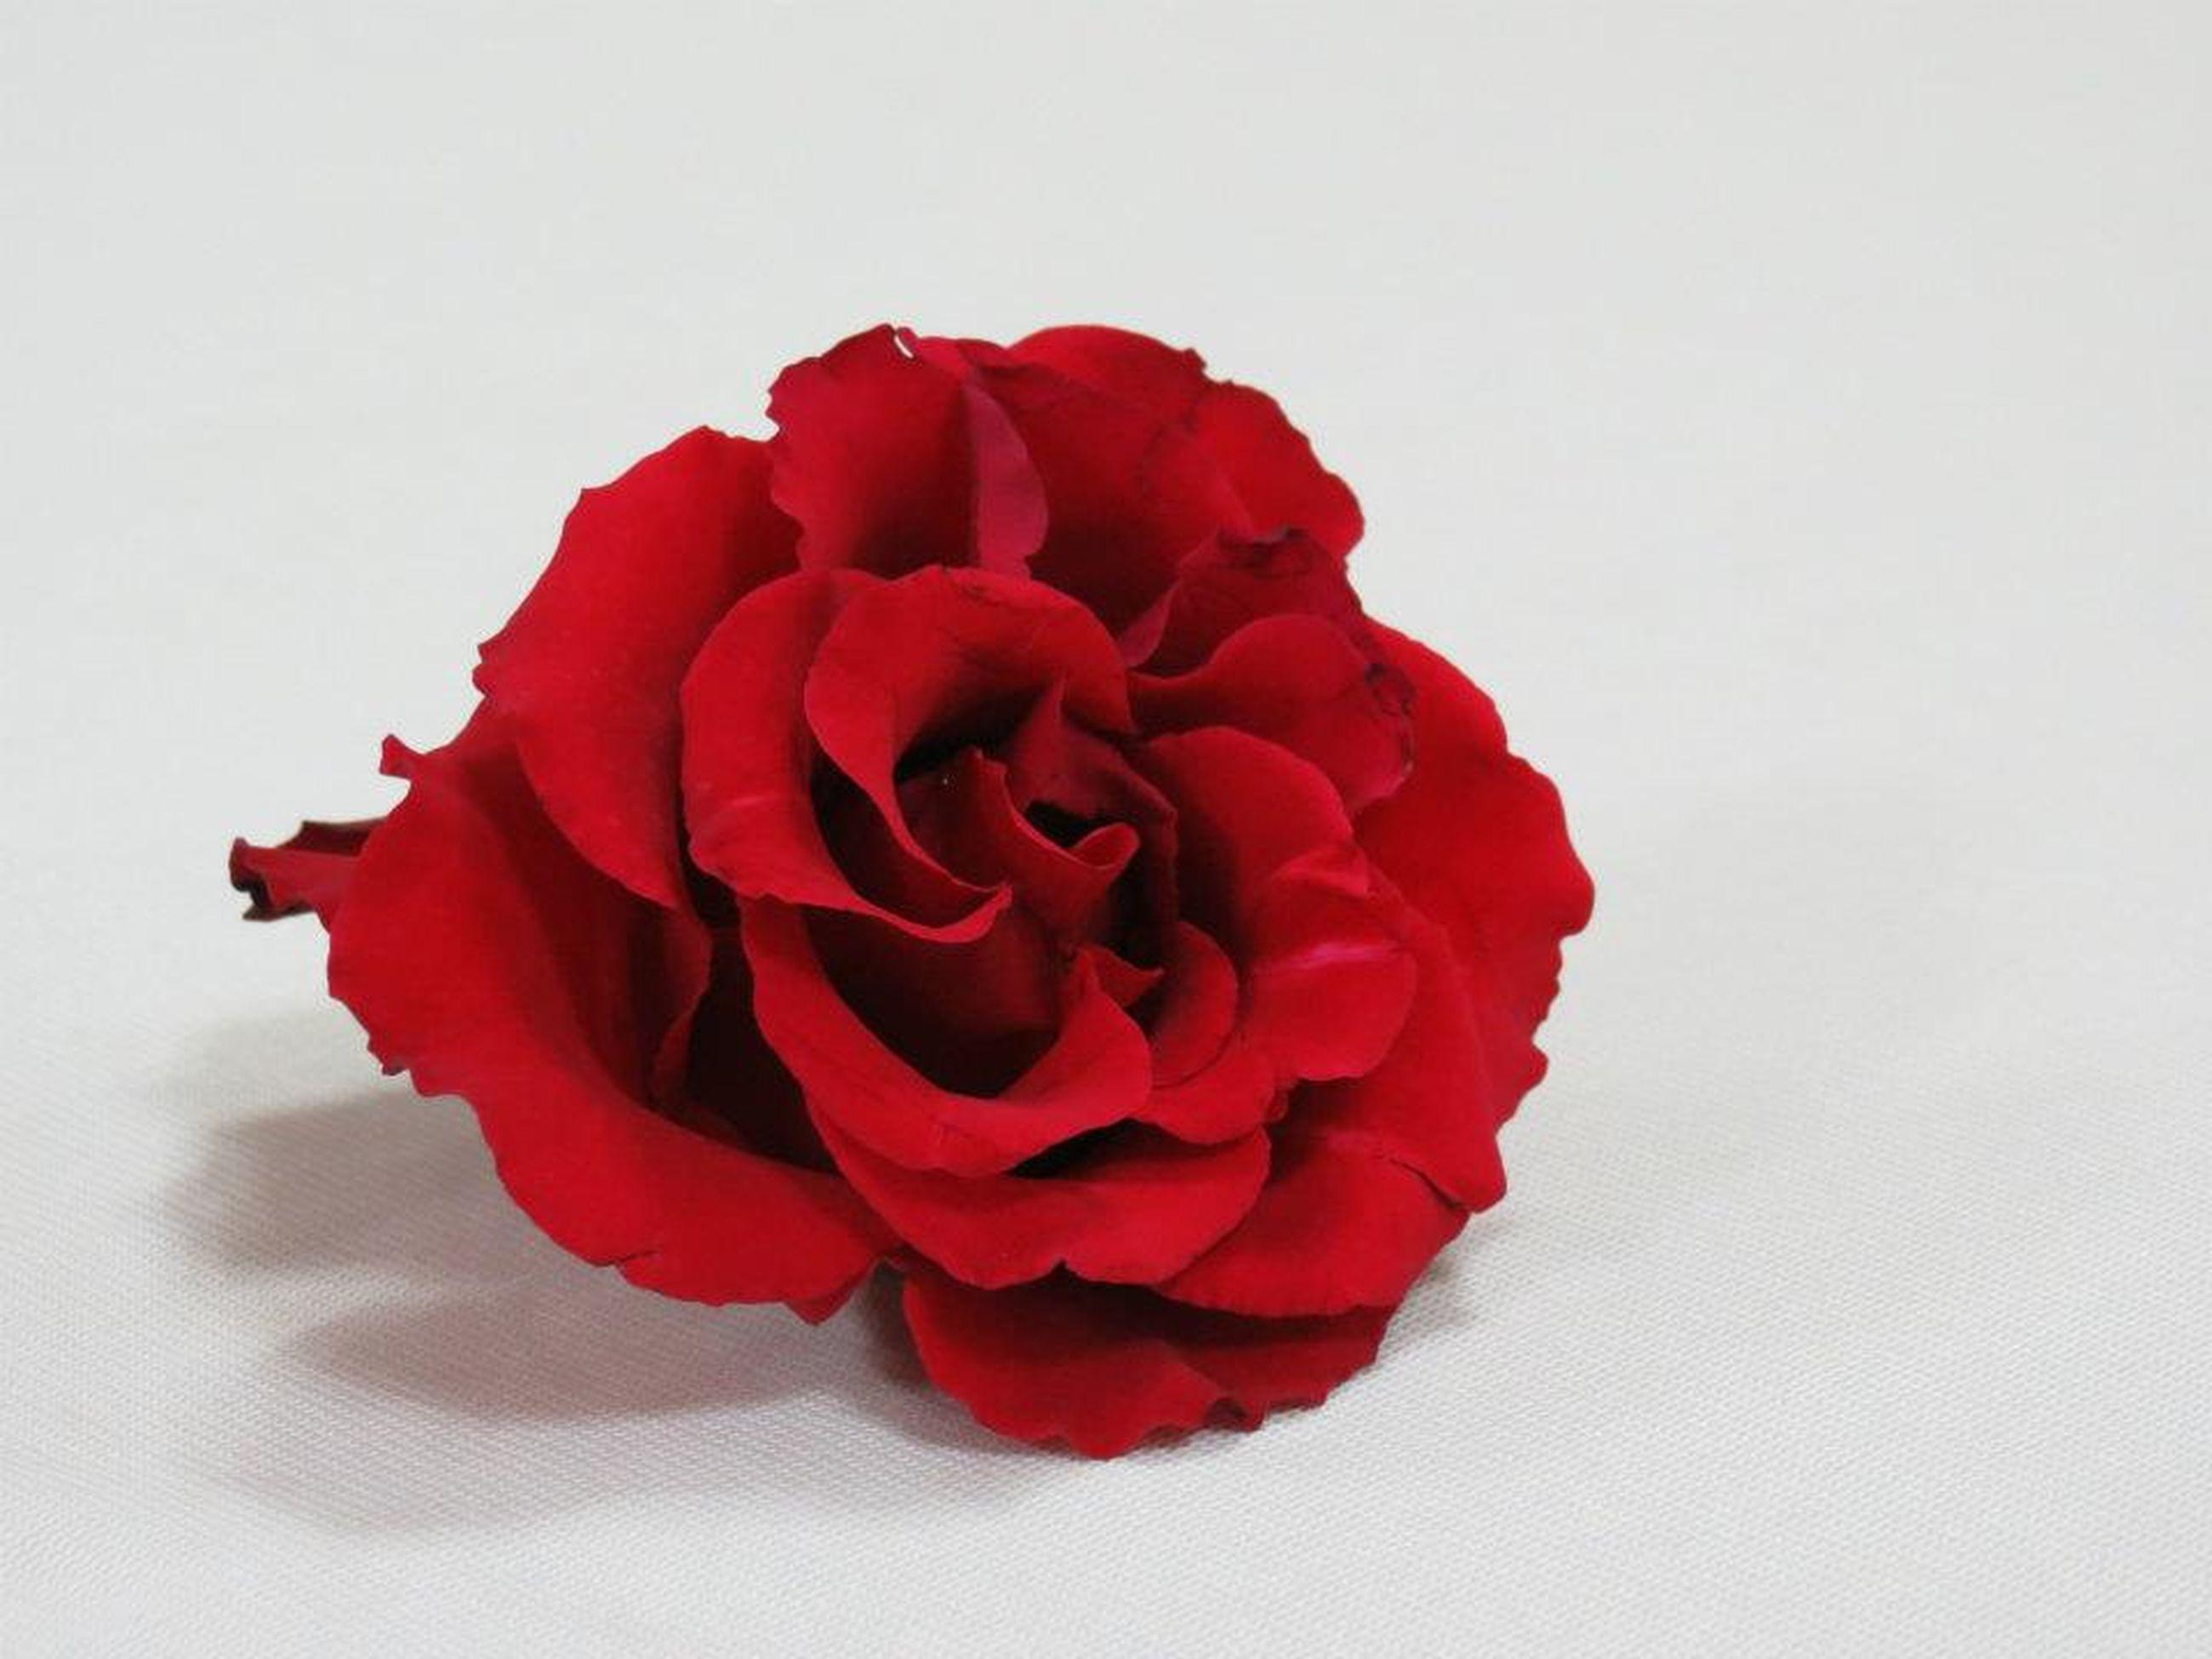 flower, studio shot, petal, white background, red, flower head, freshness, fragility, rose - flower, beauty in nature, close-up, indoors, rose, nature, single flower, copy space, no people, still life, growth, single object